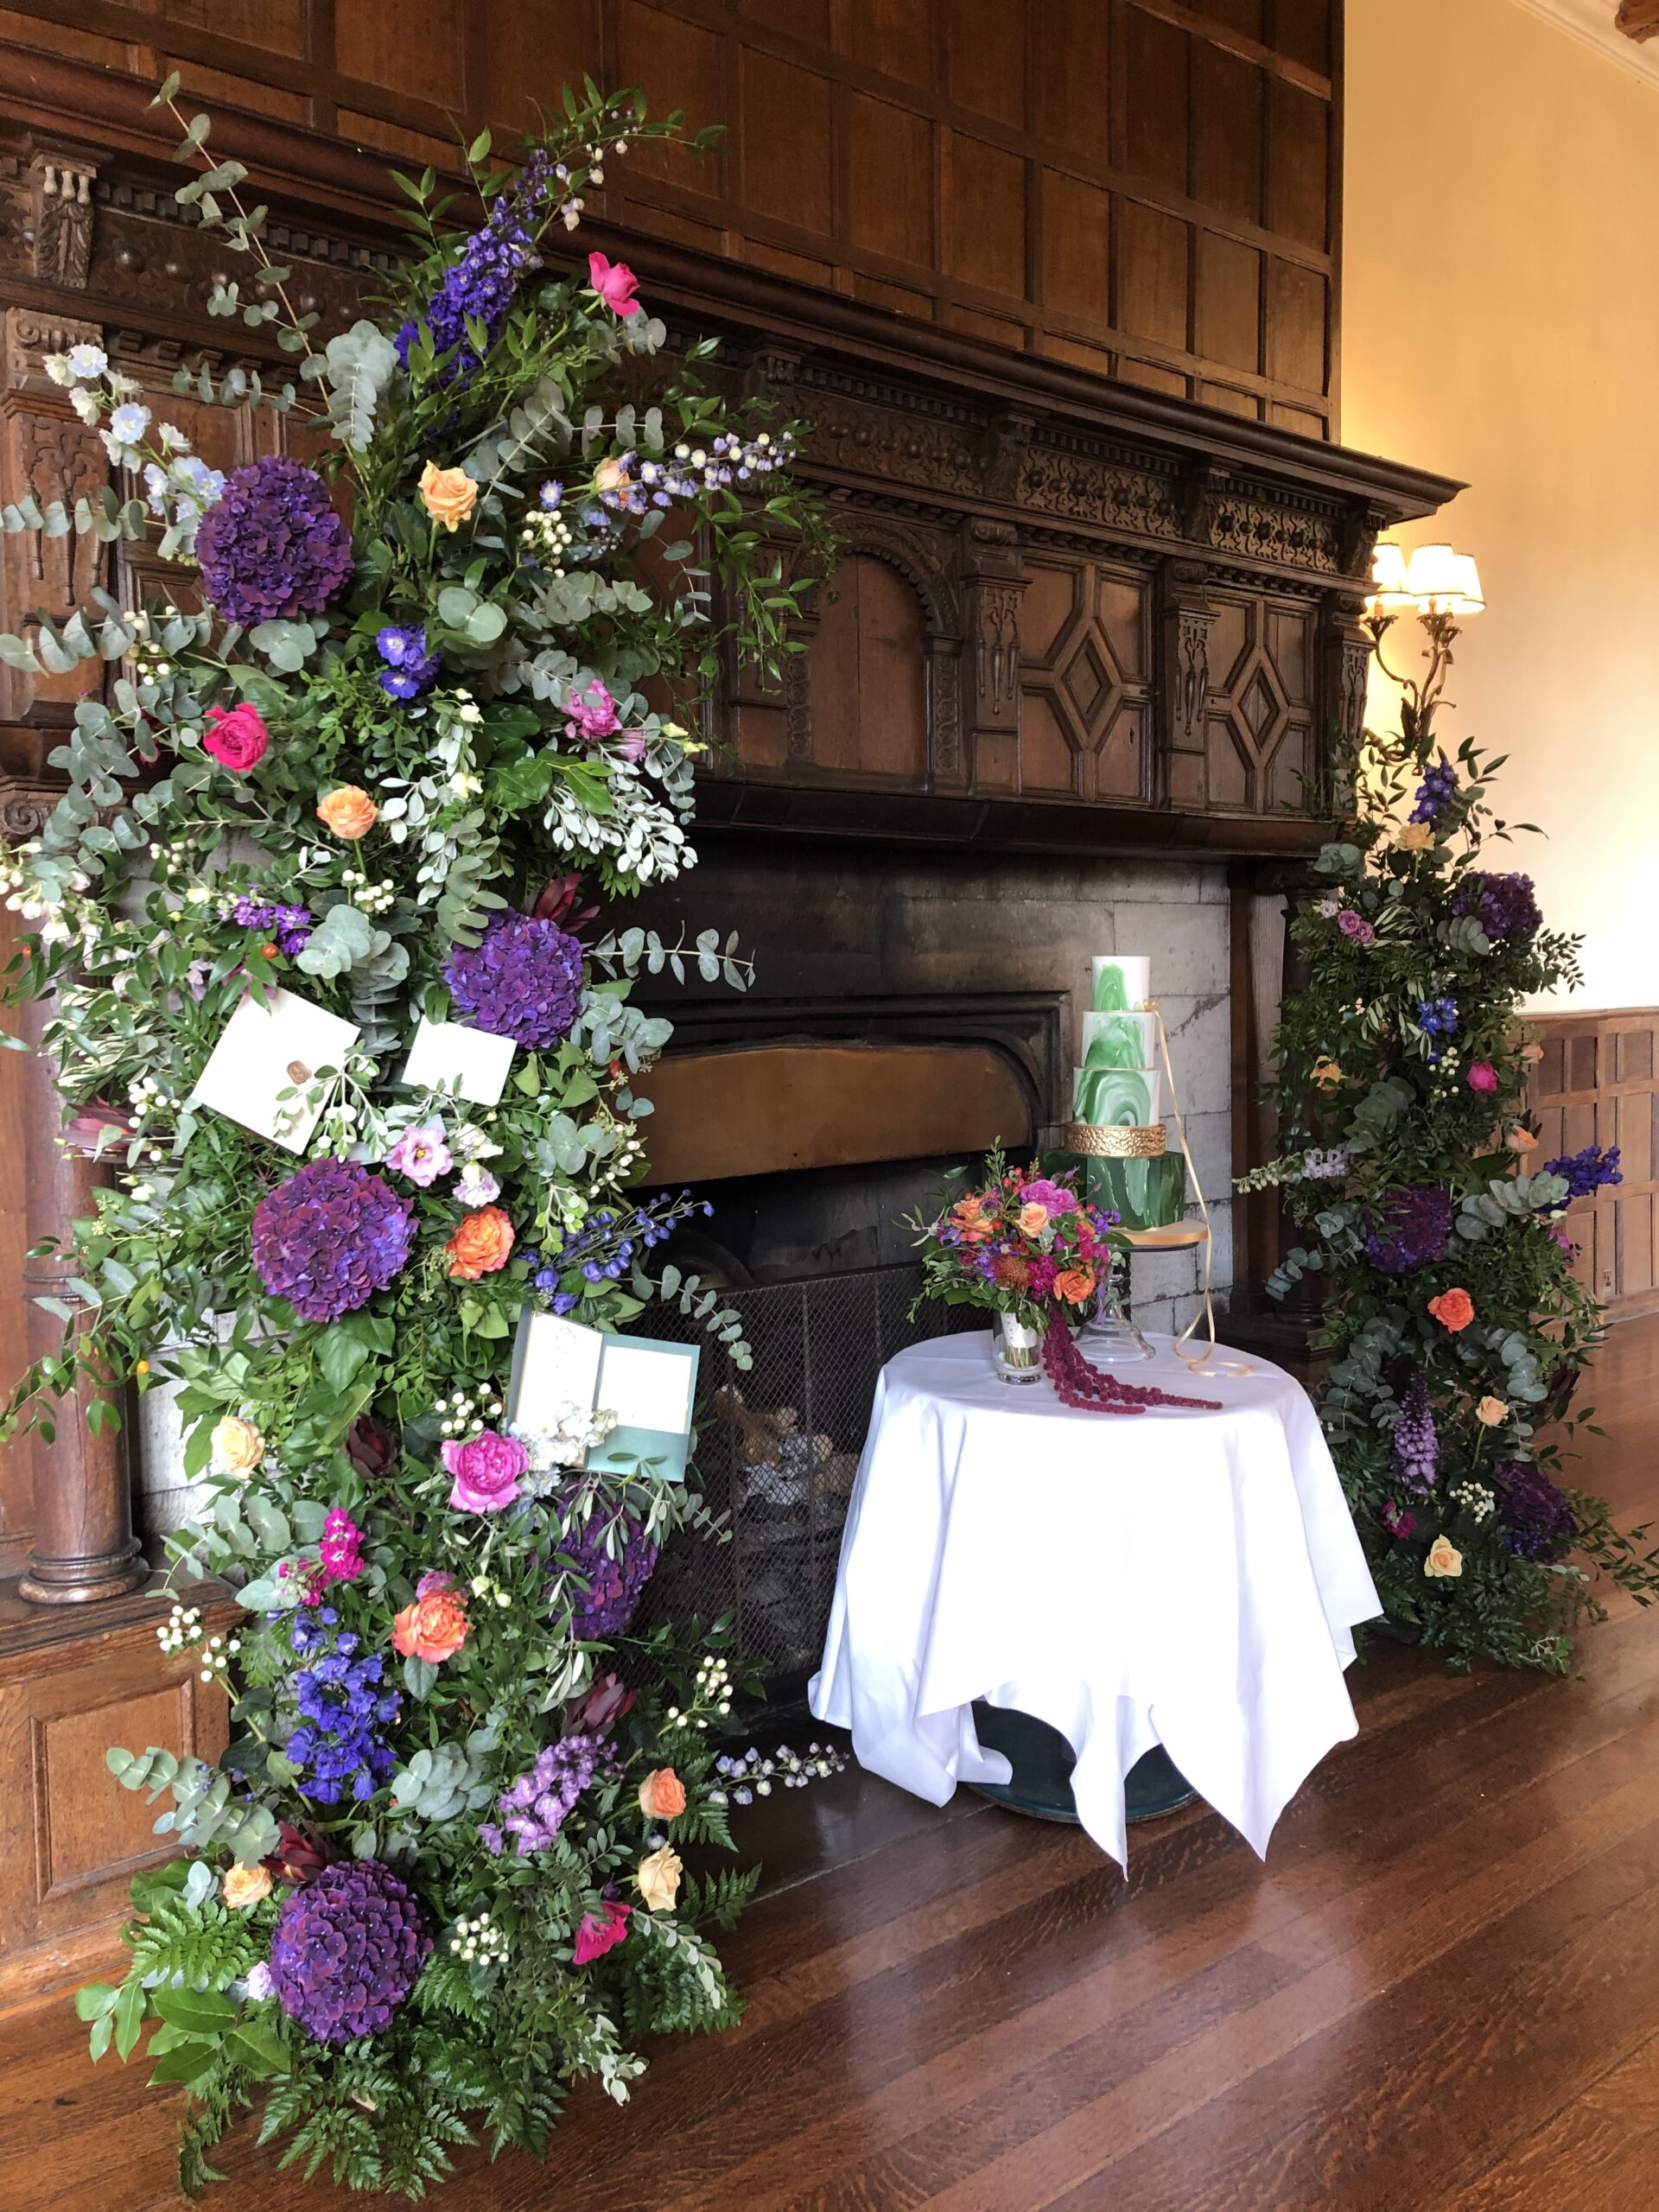 Fireplace surrounded by flowers, wedding cake